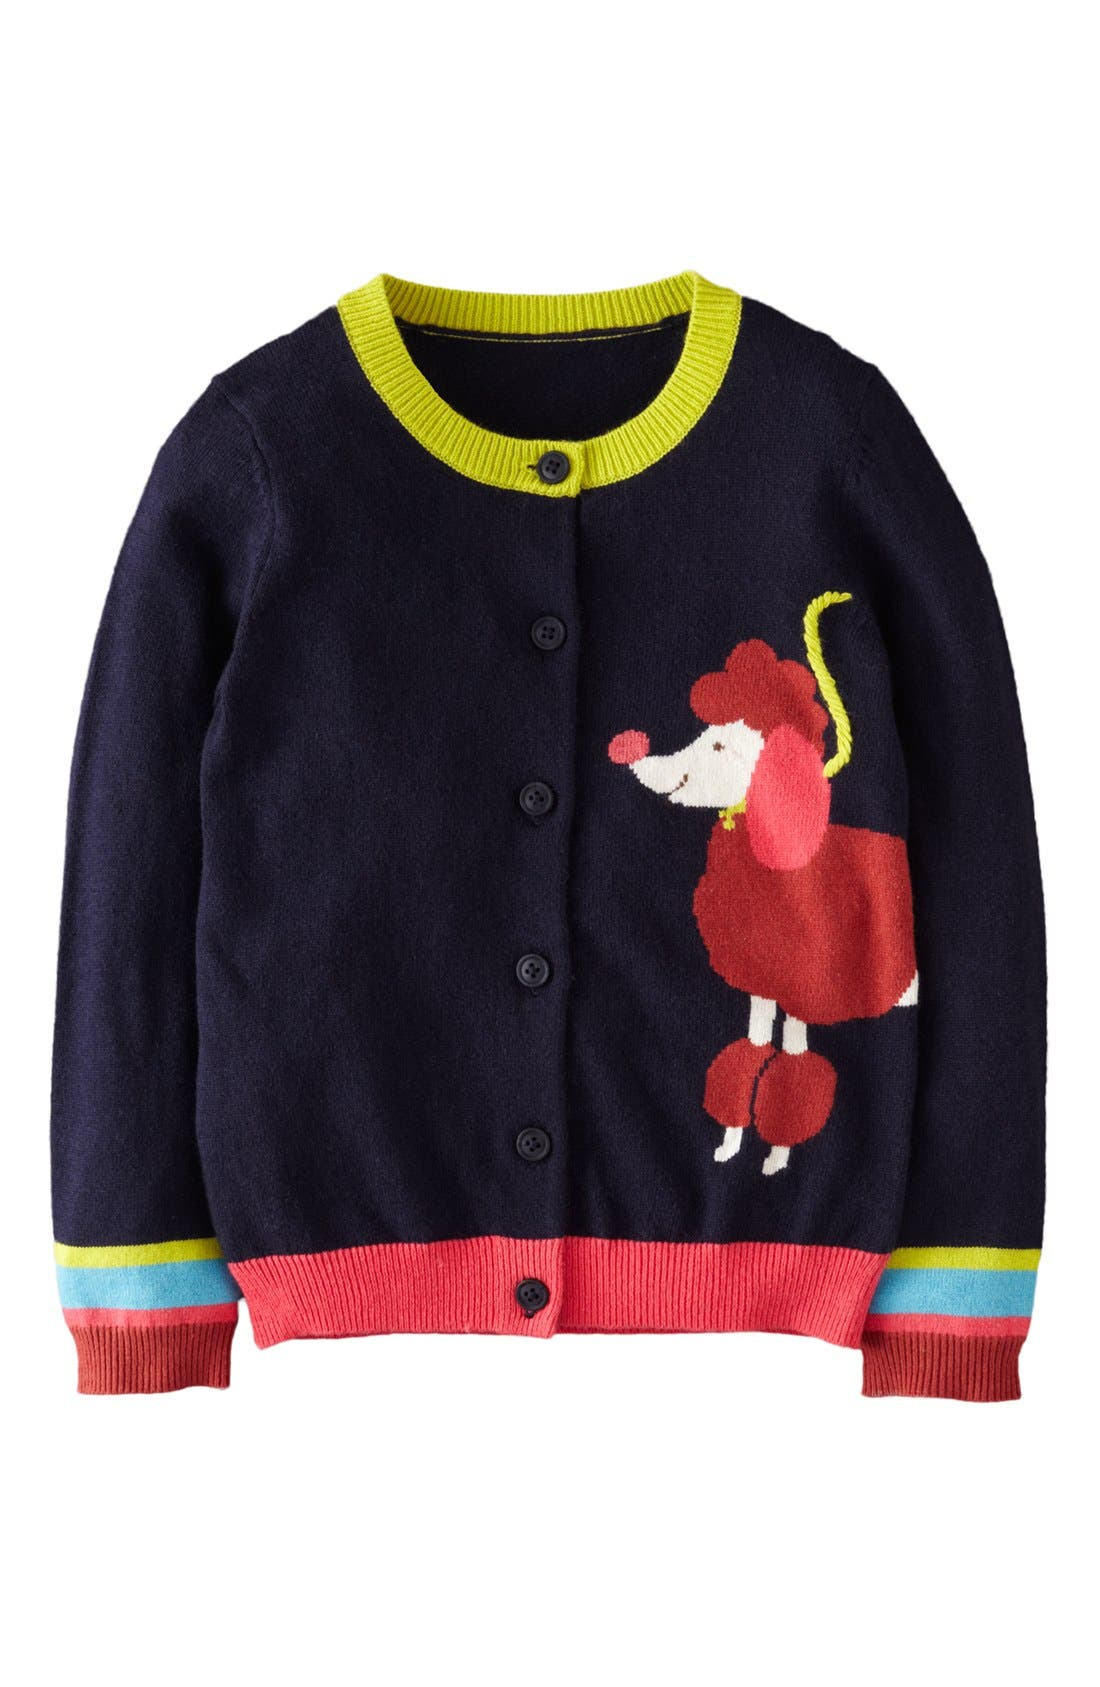 Main Image - Mini Boden 'Fun' Cardigan (Toddler Girls)